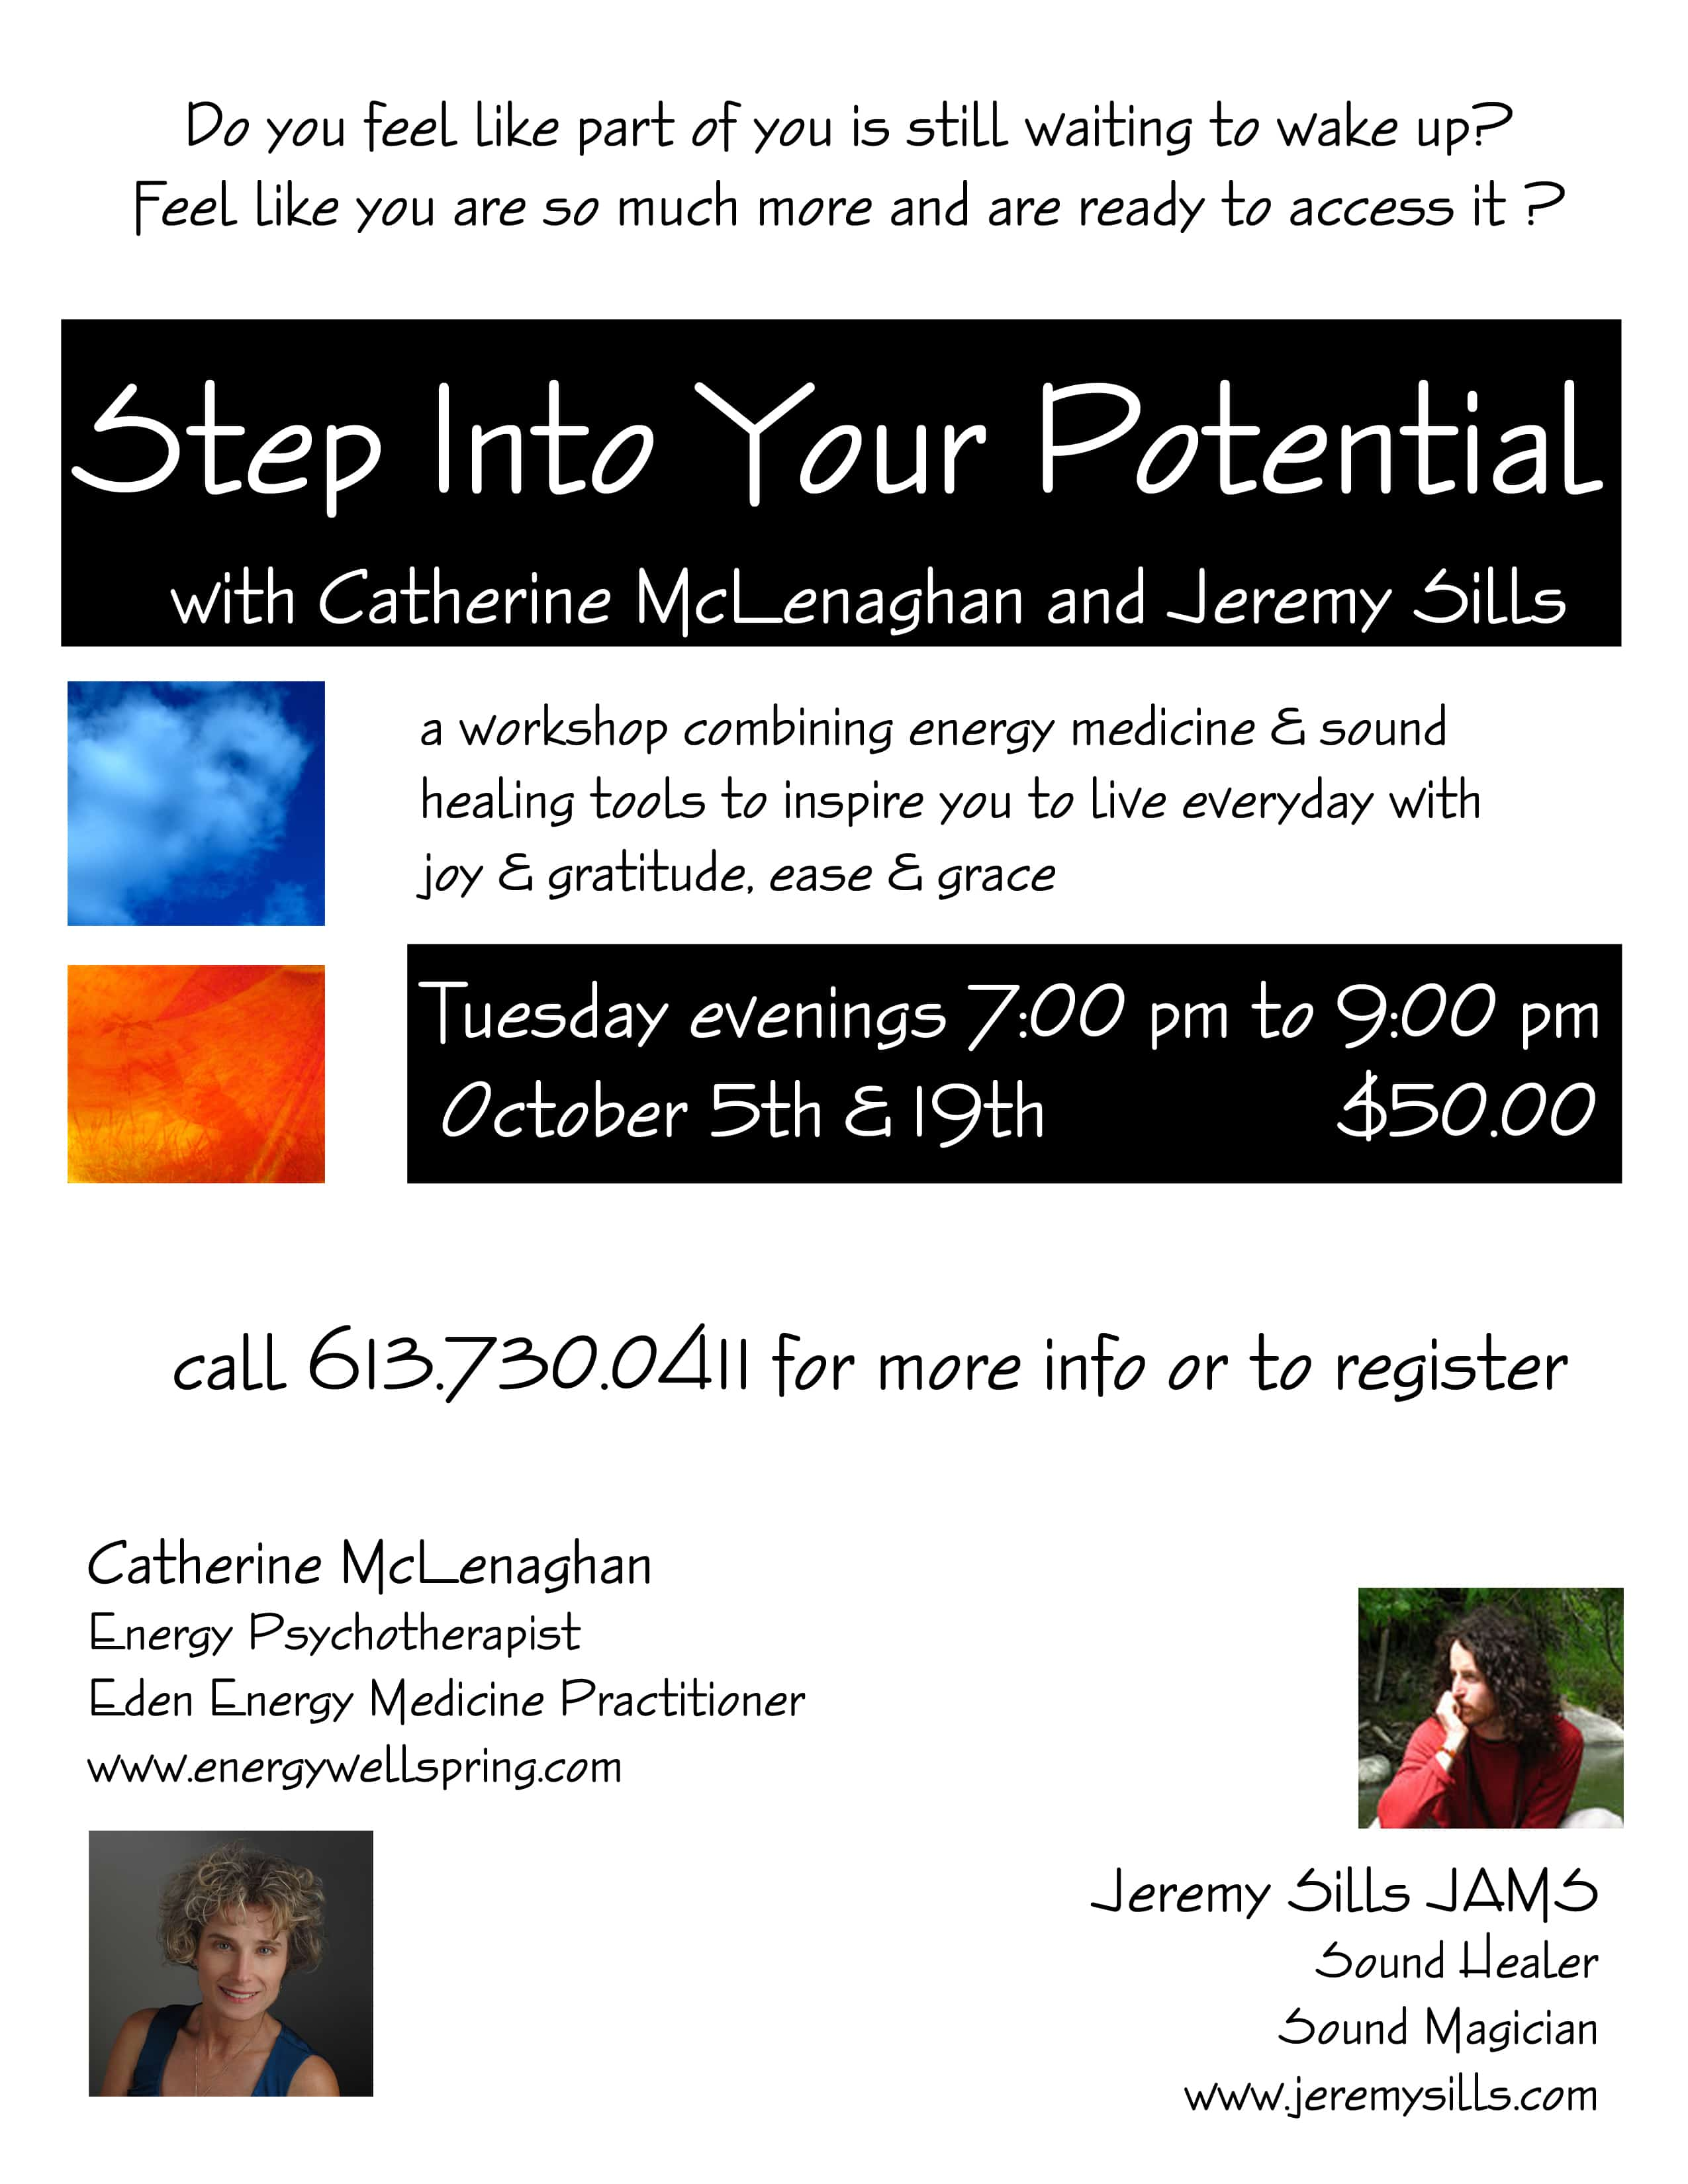 Step into Your Potential – 5/10/2010 & 19/10/2010